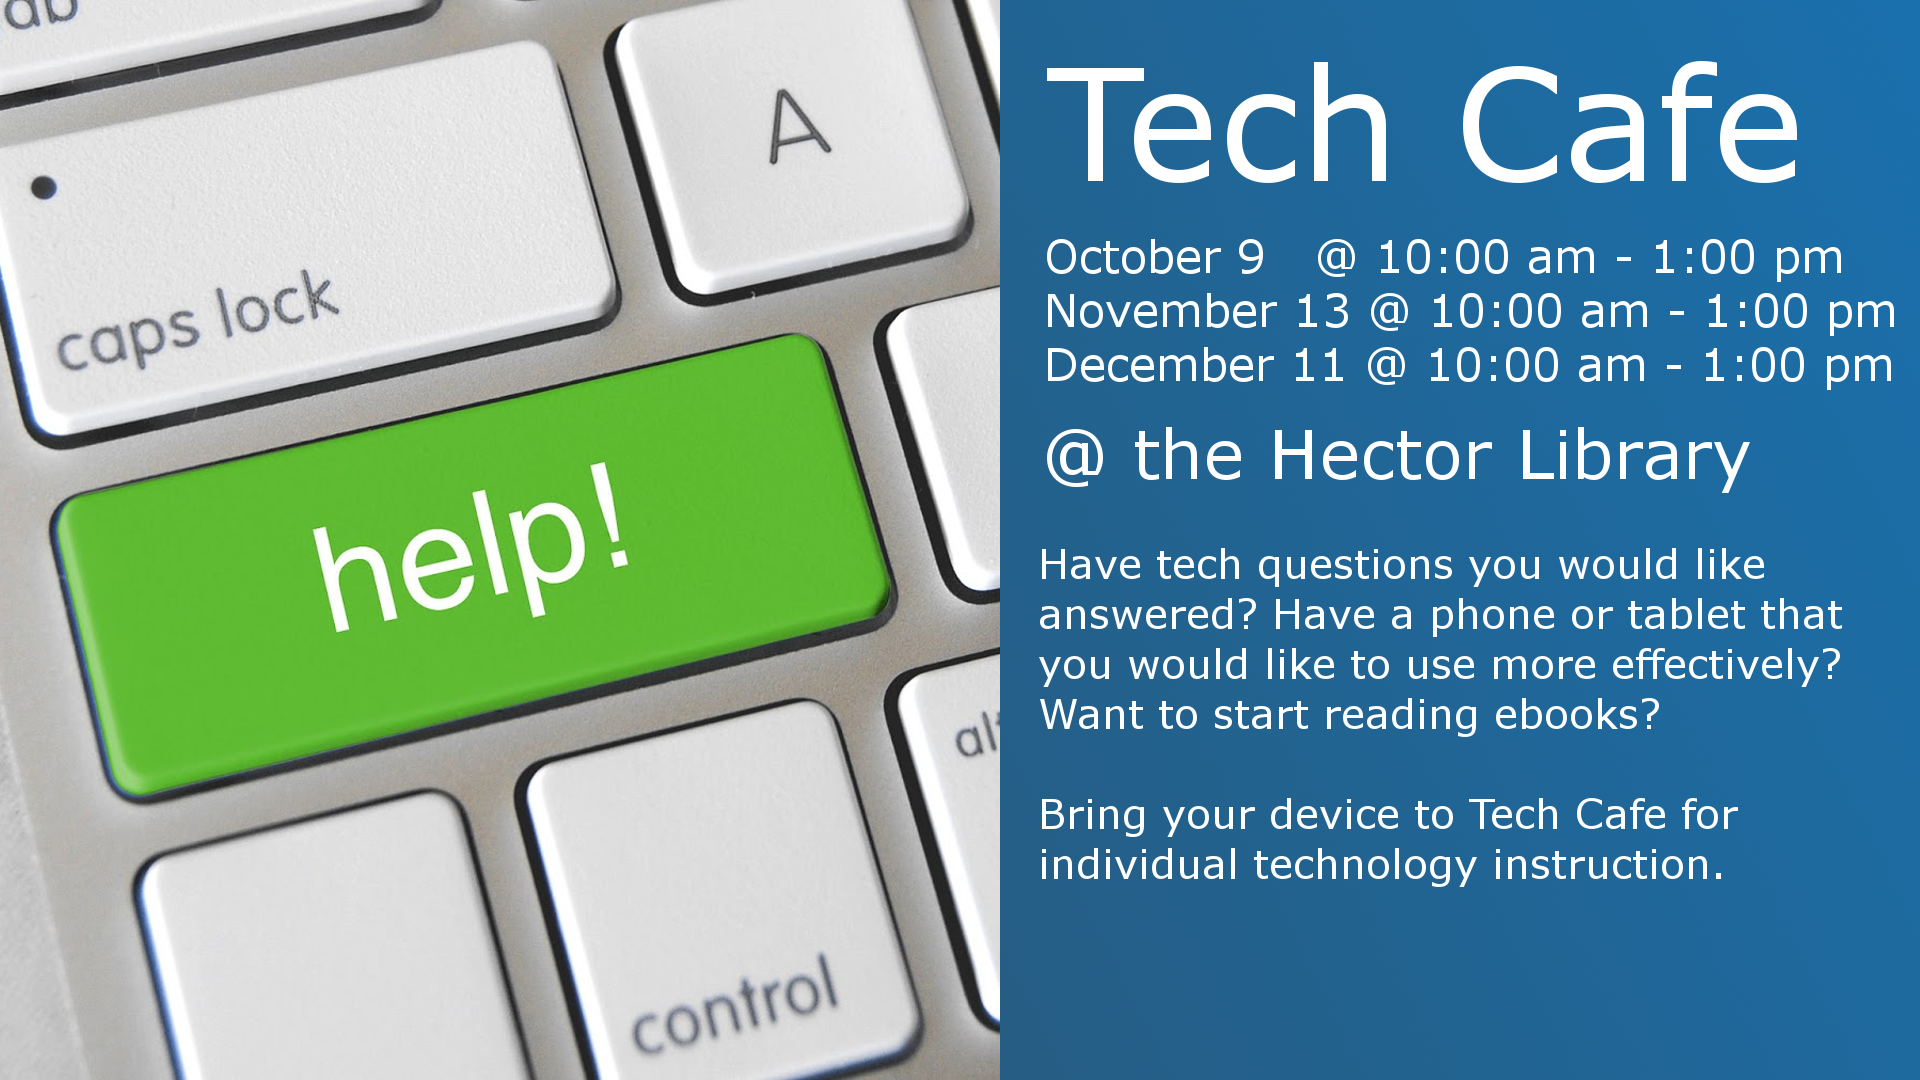 Tech Cafe  October 9 1:00 - 3:00 pm November 13 1:00 - 3:00 pm December 11 1:00 - 3:00 pm  @ the Hector Library  Have tech questions you would like answered? Have a phone or tablet you would like to use more effectively? Want to start reading ebooks?  Bring your device to Tech Cafe for individual technology instruction.